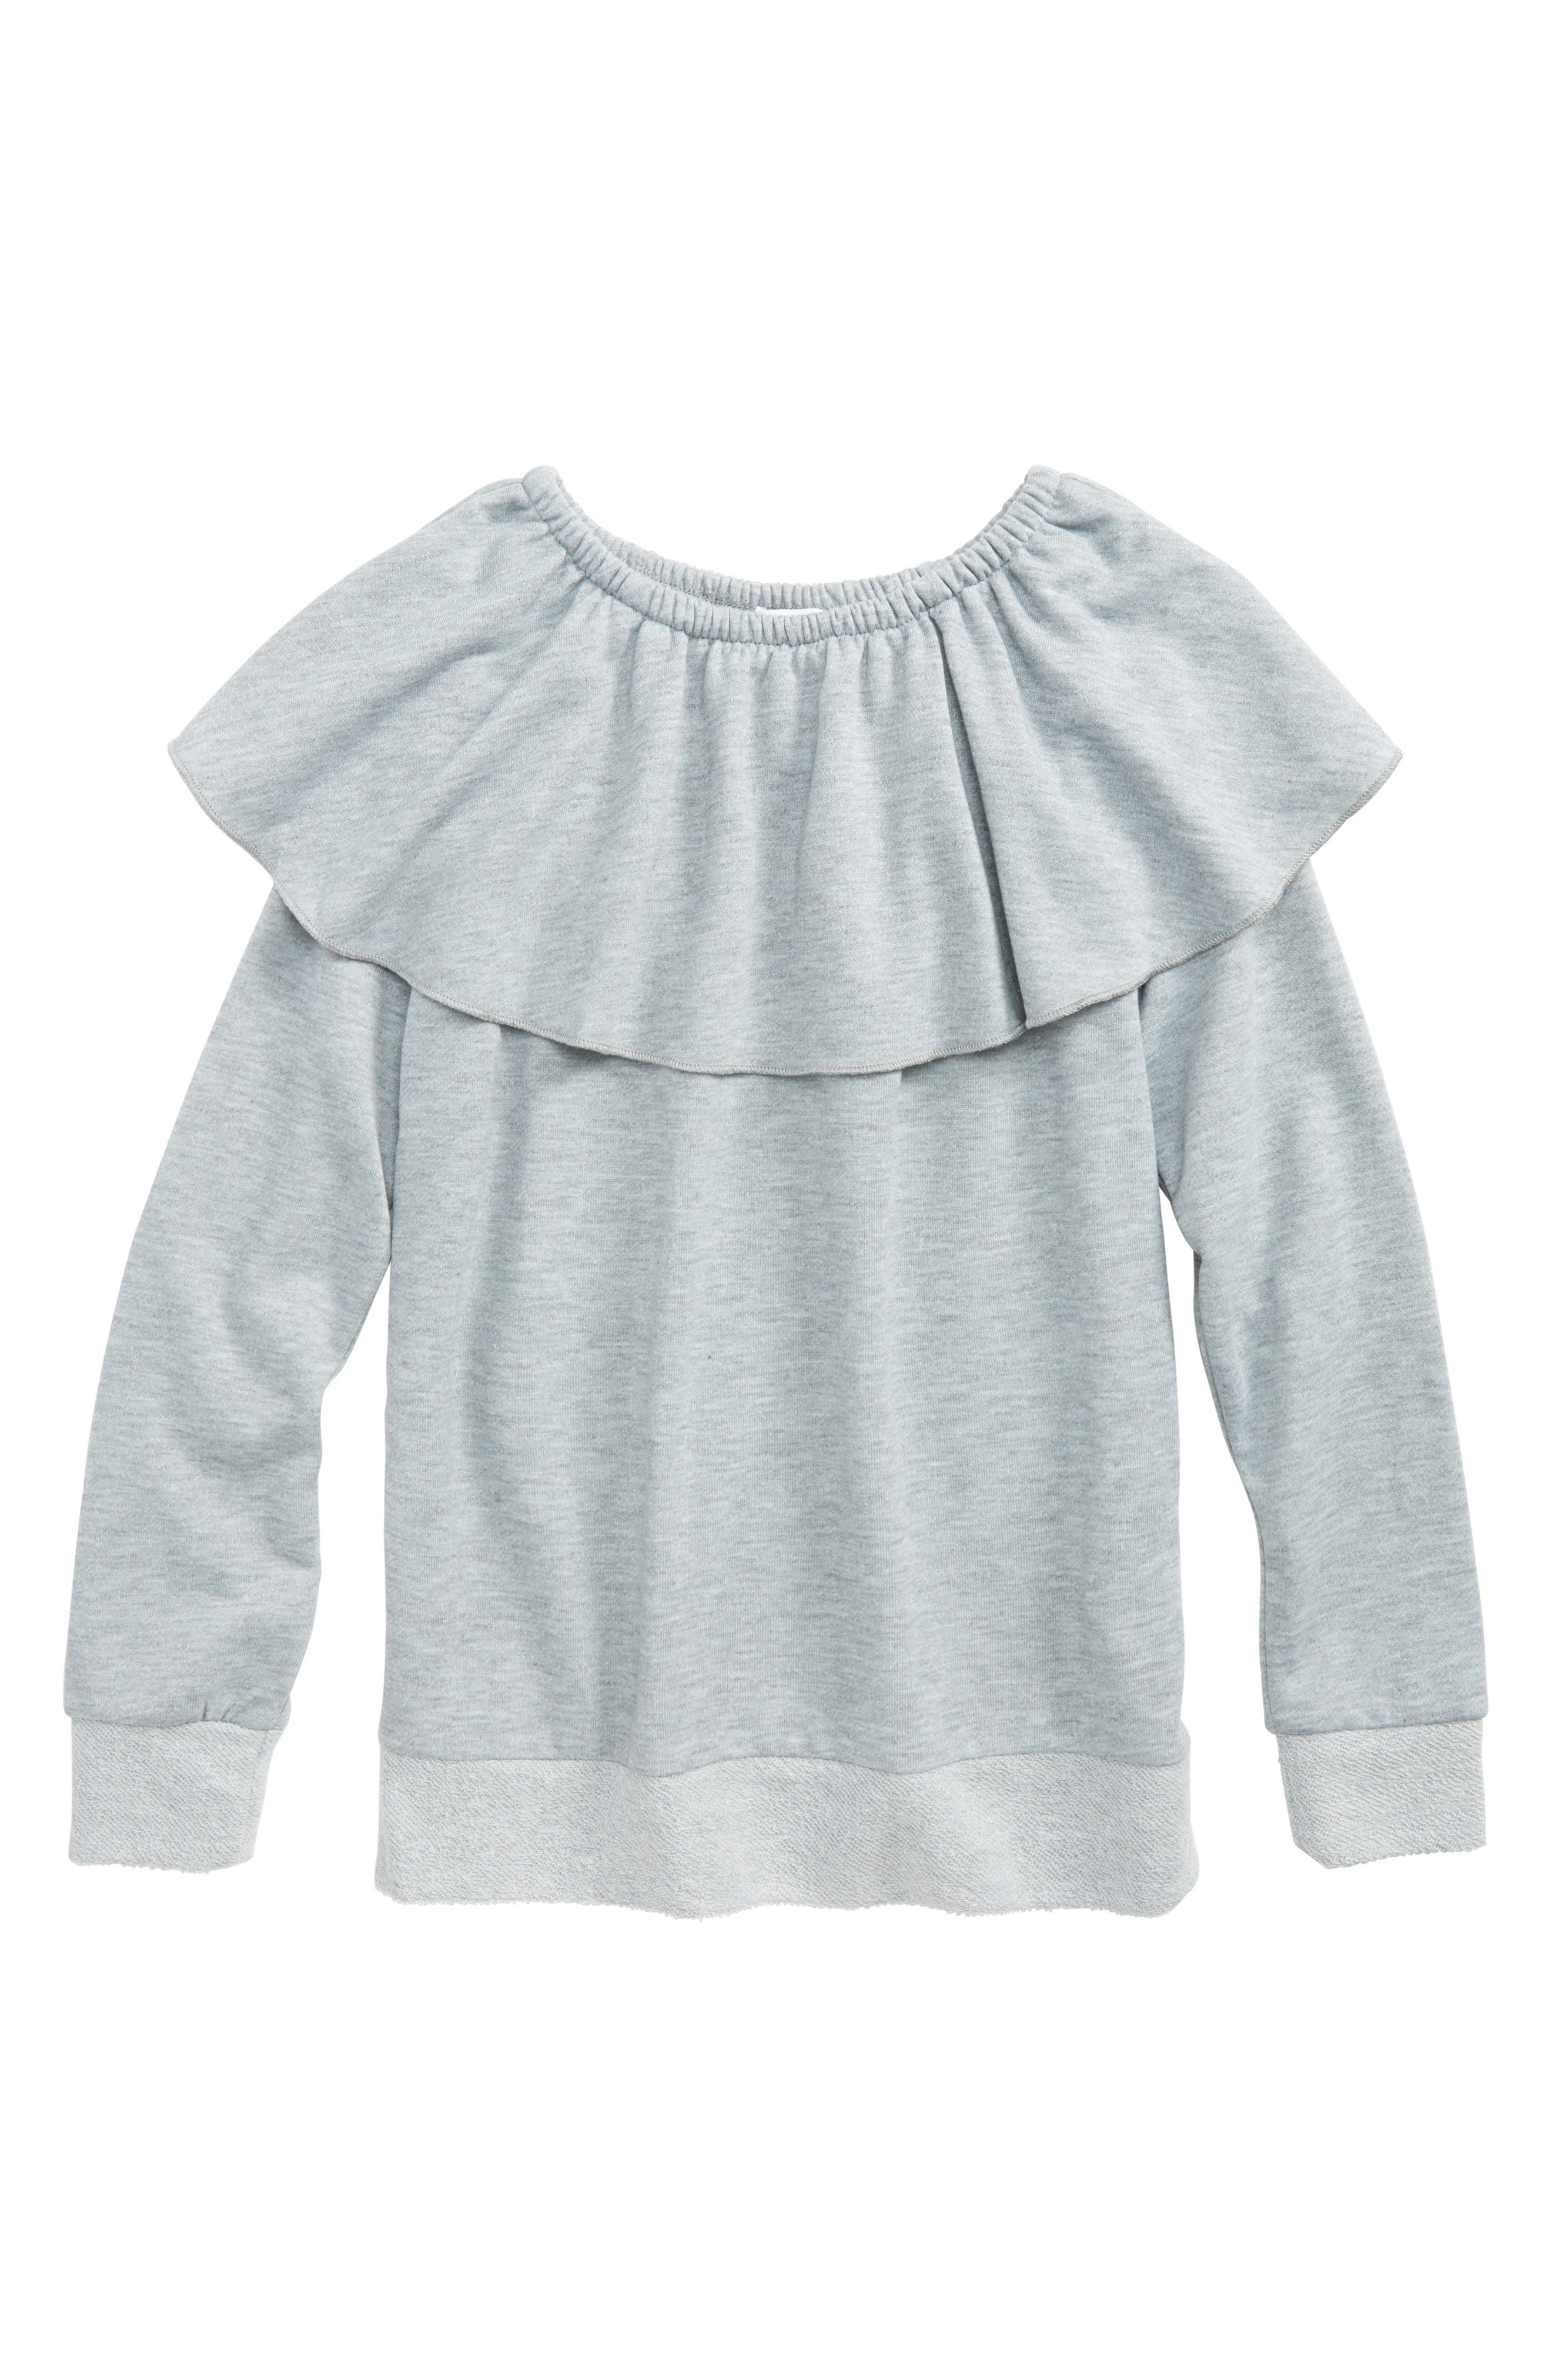 Splendid Ruffle French Terry Sweatshirt (Big Girls)